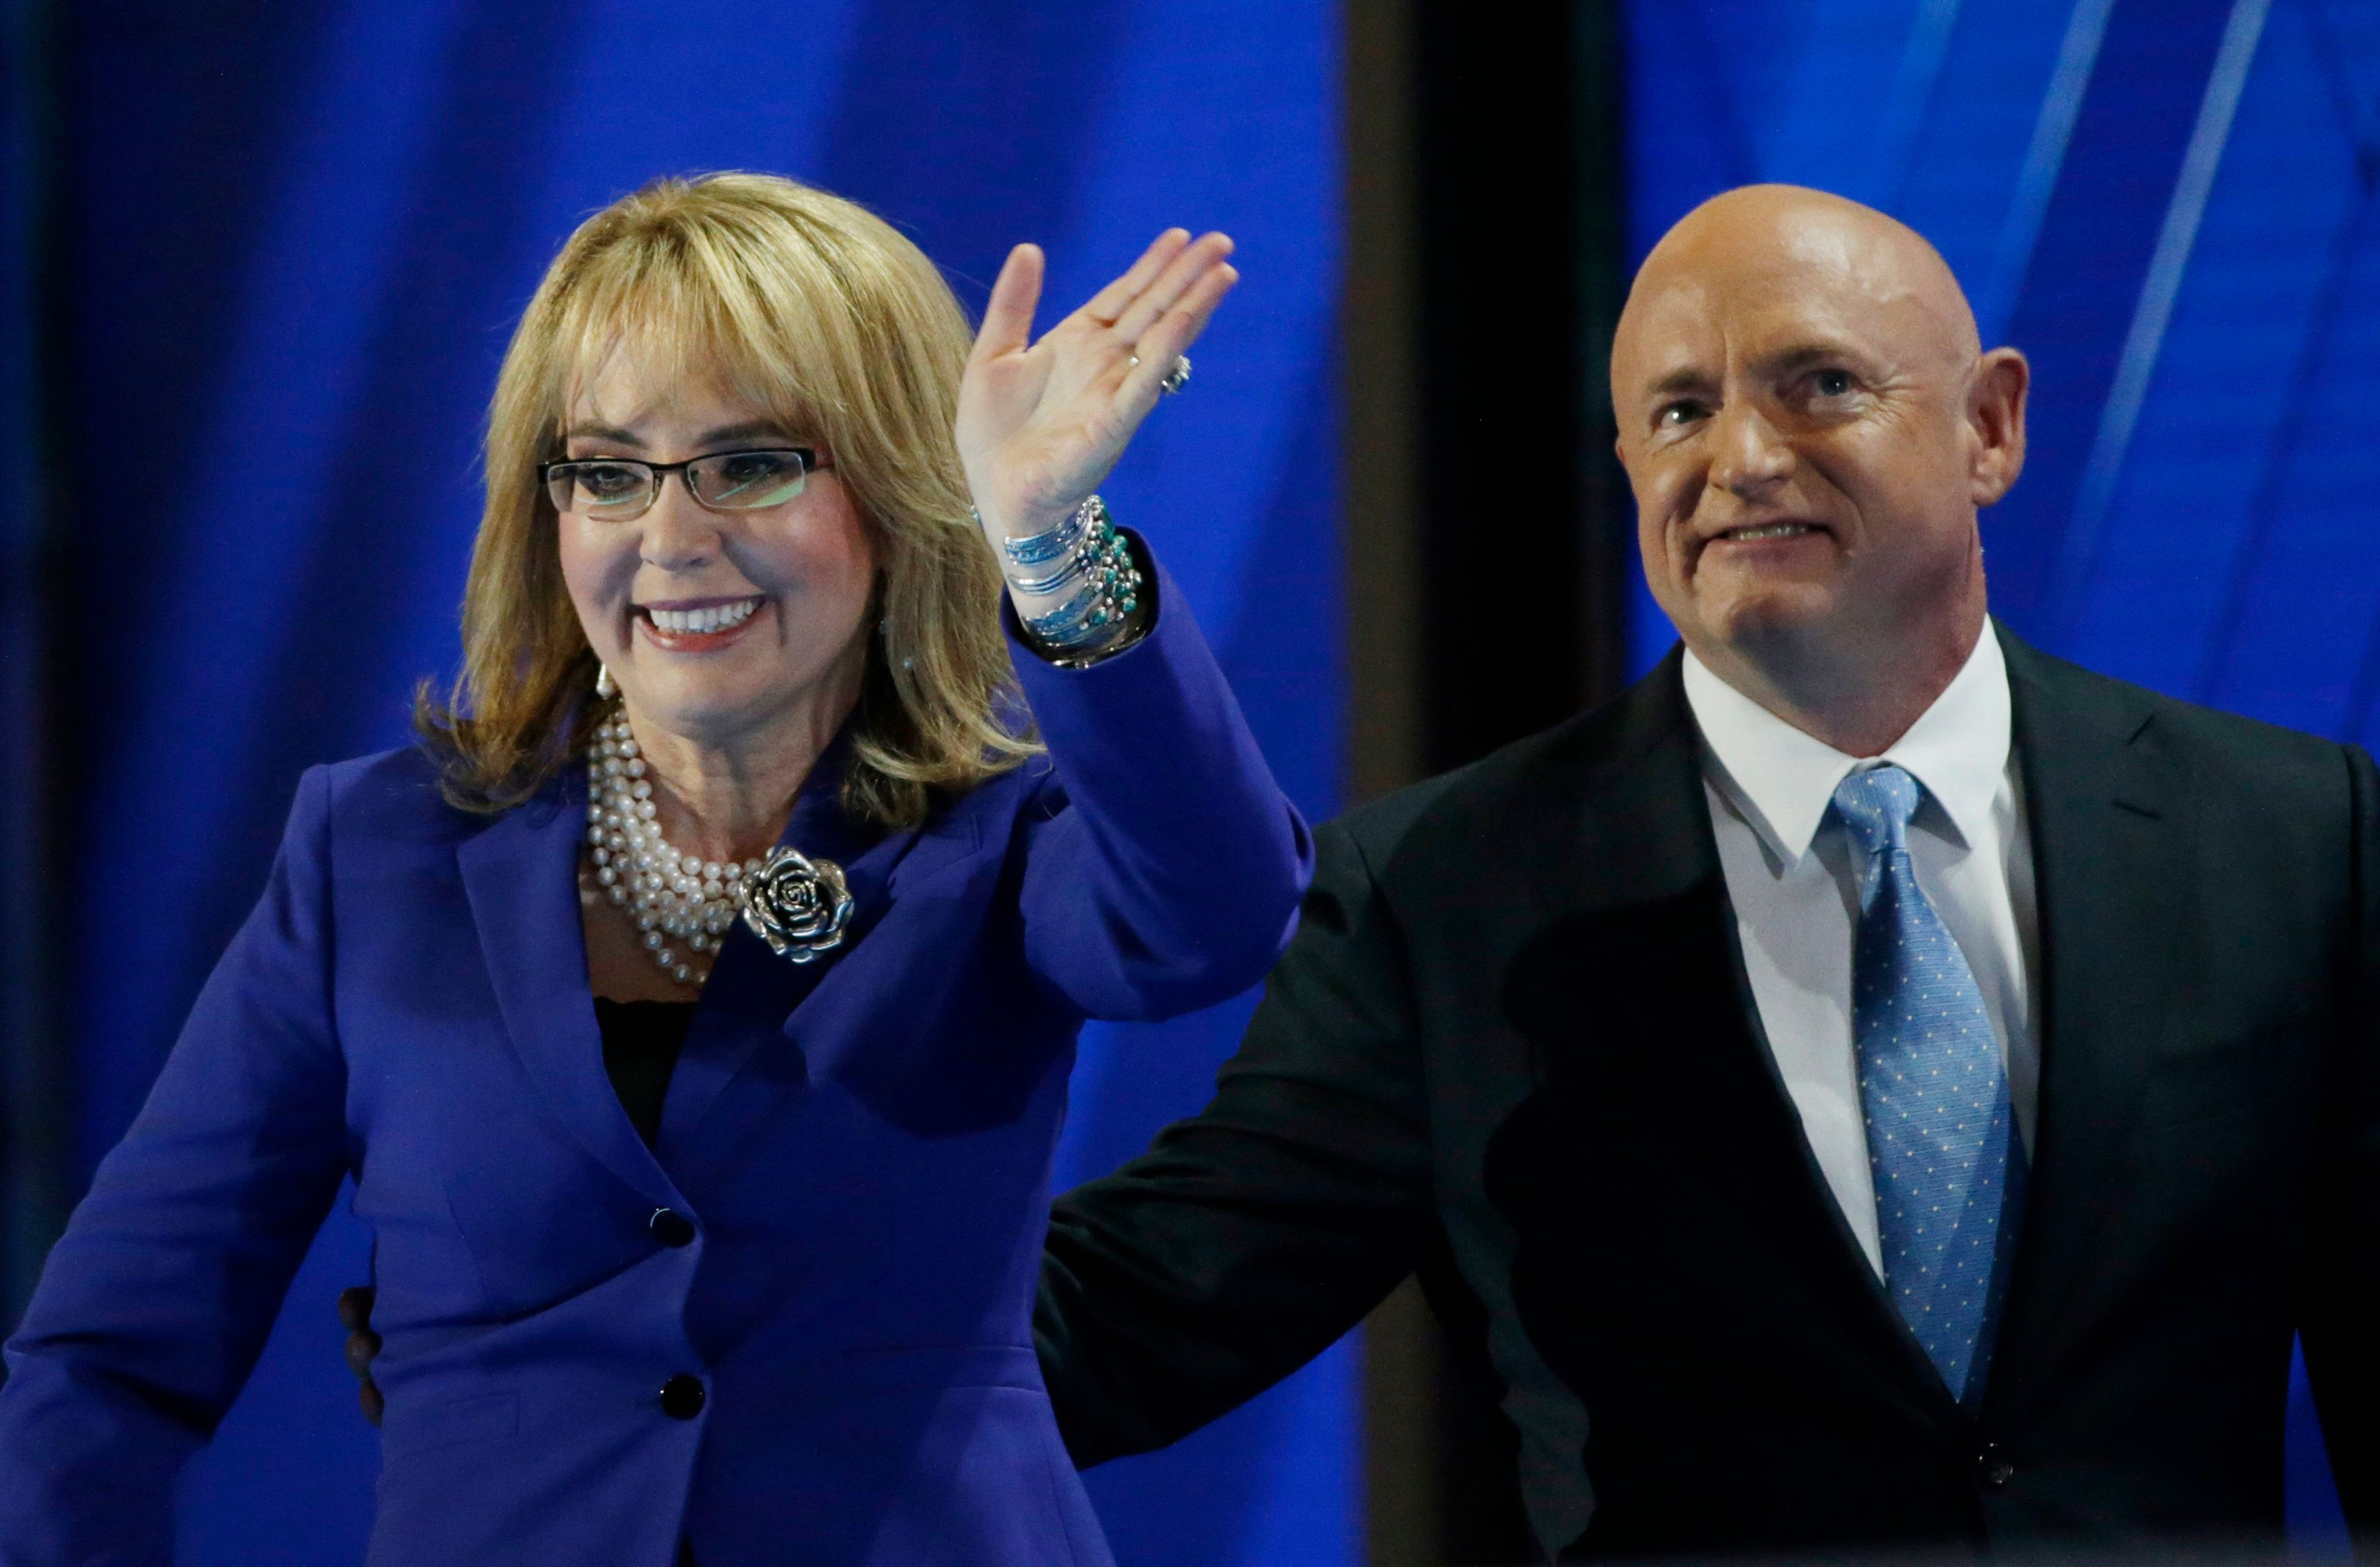 Former Rep. Gabby Giffords (D-AZ) leaves the stage with her husband retired Navy Captain Mark Kelly at the Democratic National Convention in Philadelphia, Pennsylvania, U.S. July 27, 2016. REUTERS/Gary Cameron